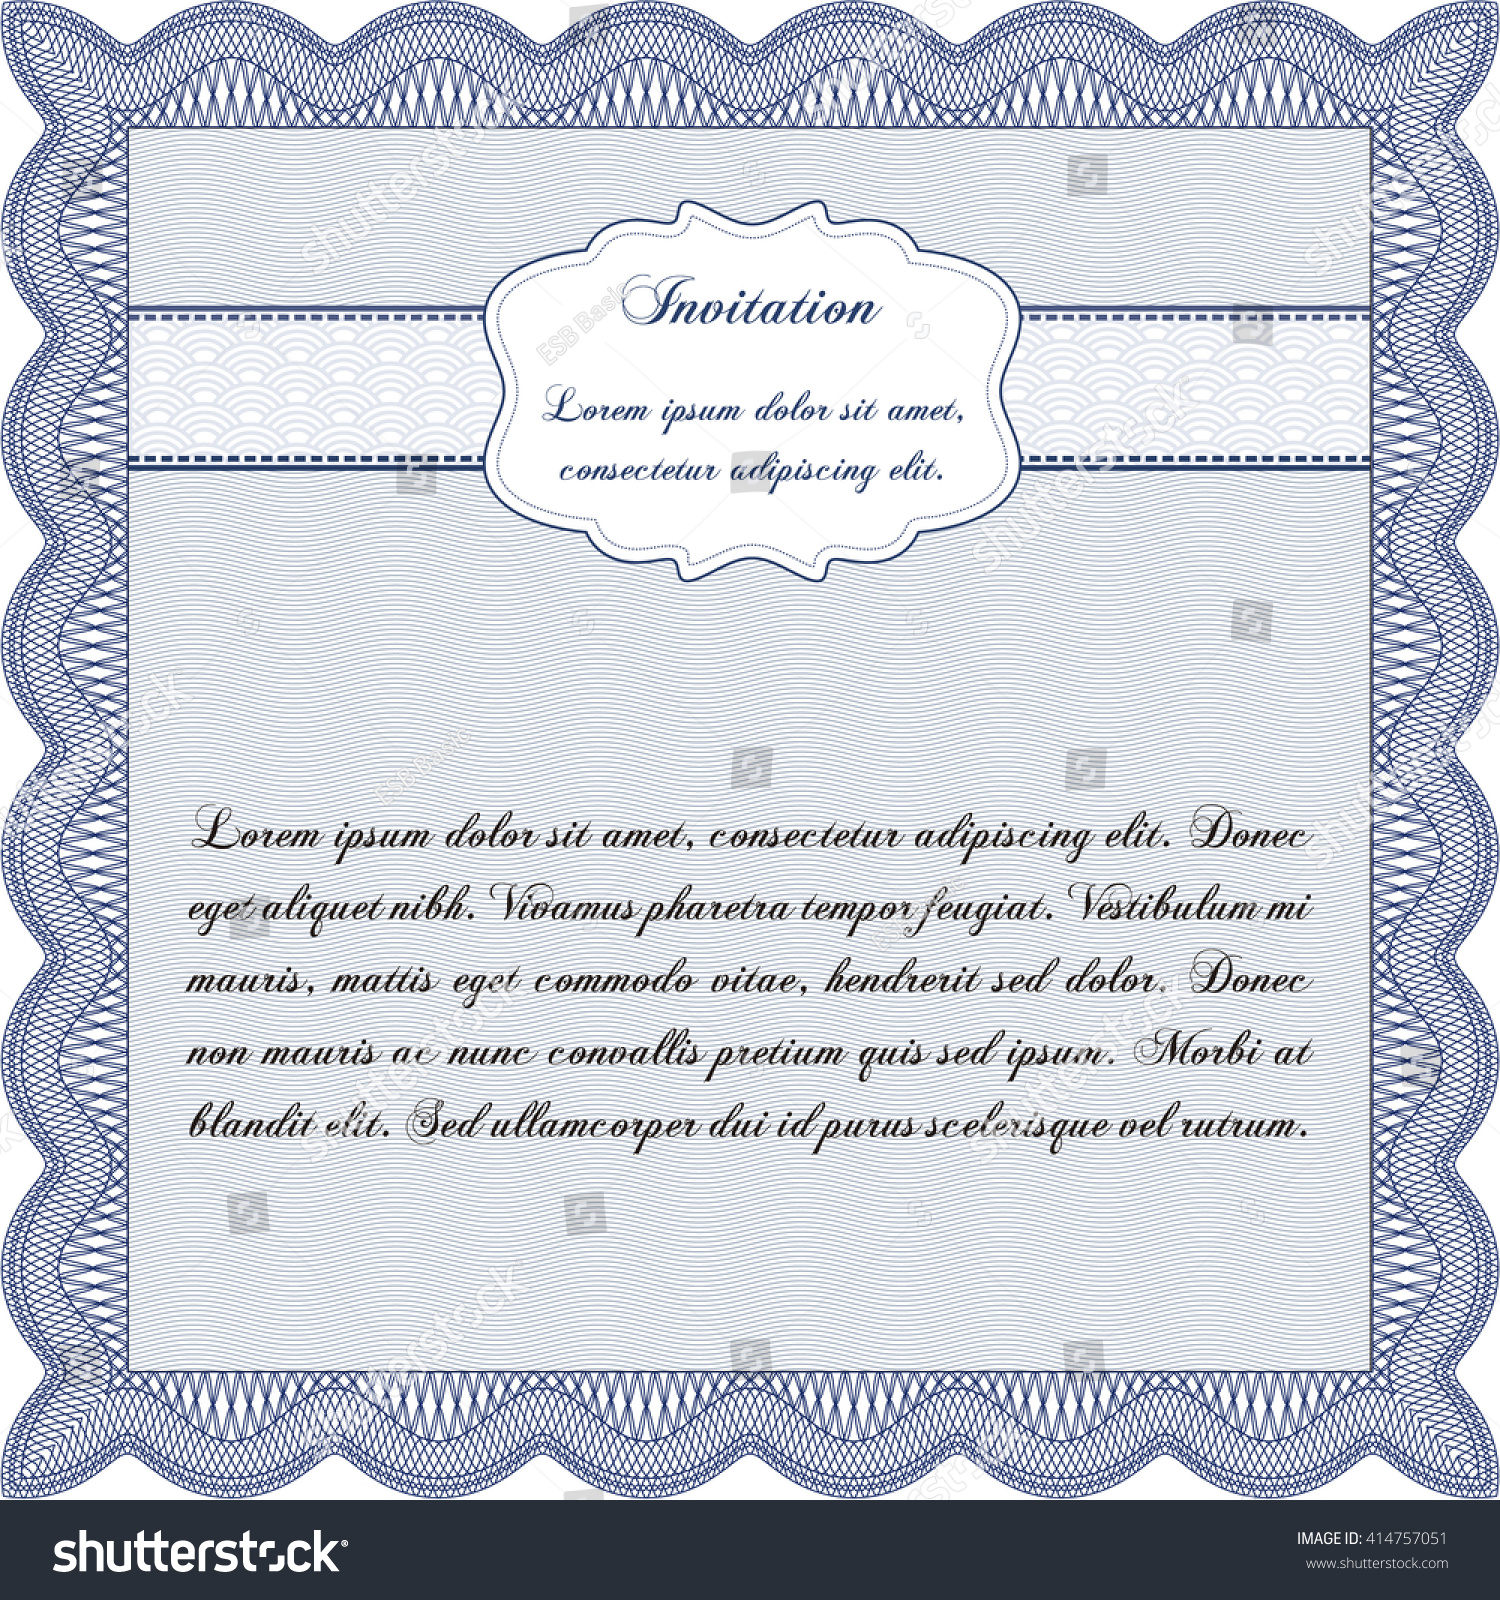 Formal invitation template complex background marriage invitation formal invitation template customizable easy edit stock vector stock vector formal invitation template customizable easy to stopboris Choice Image